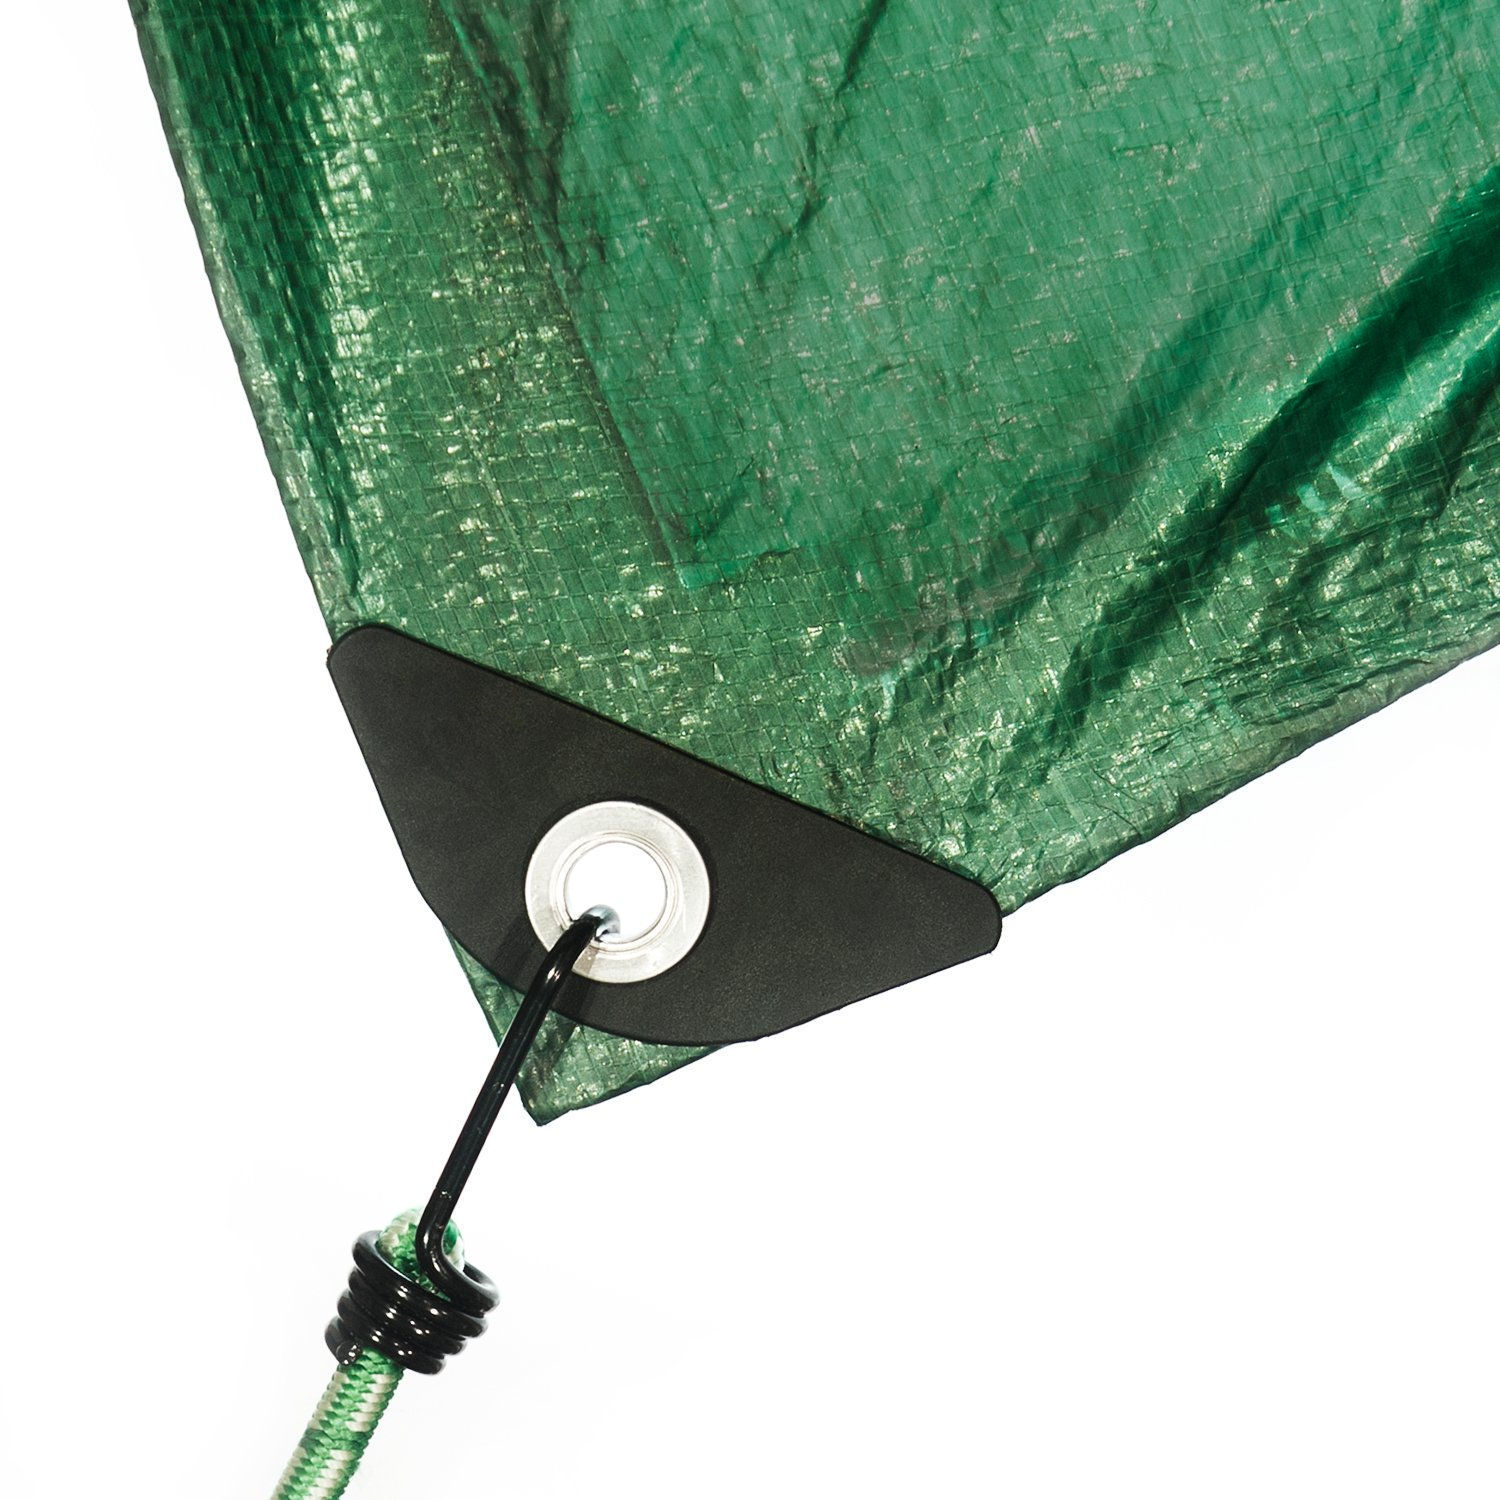 Stansport Reinforced Multi-Purpose Tarp